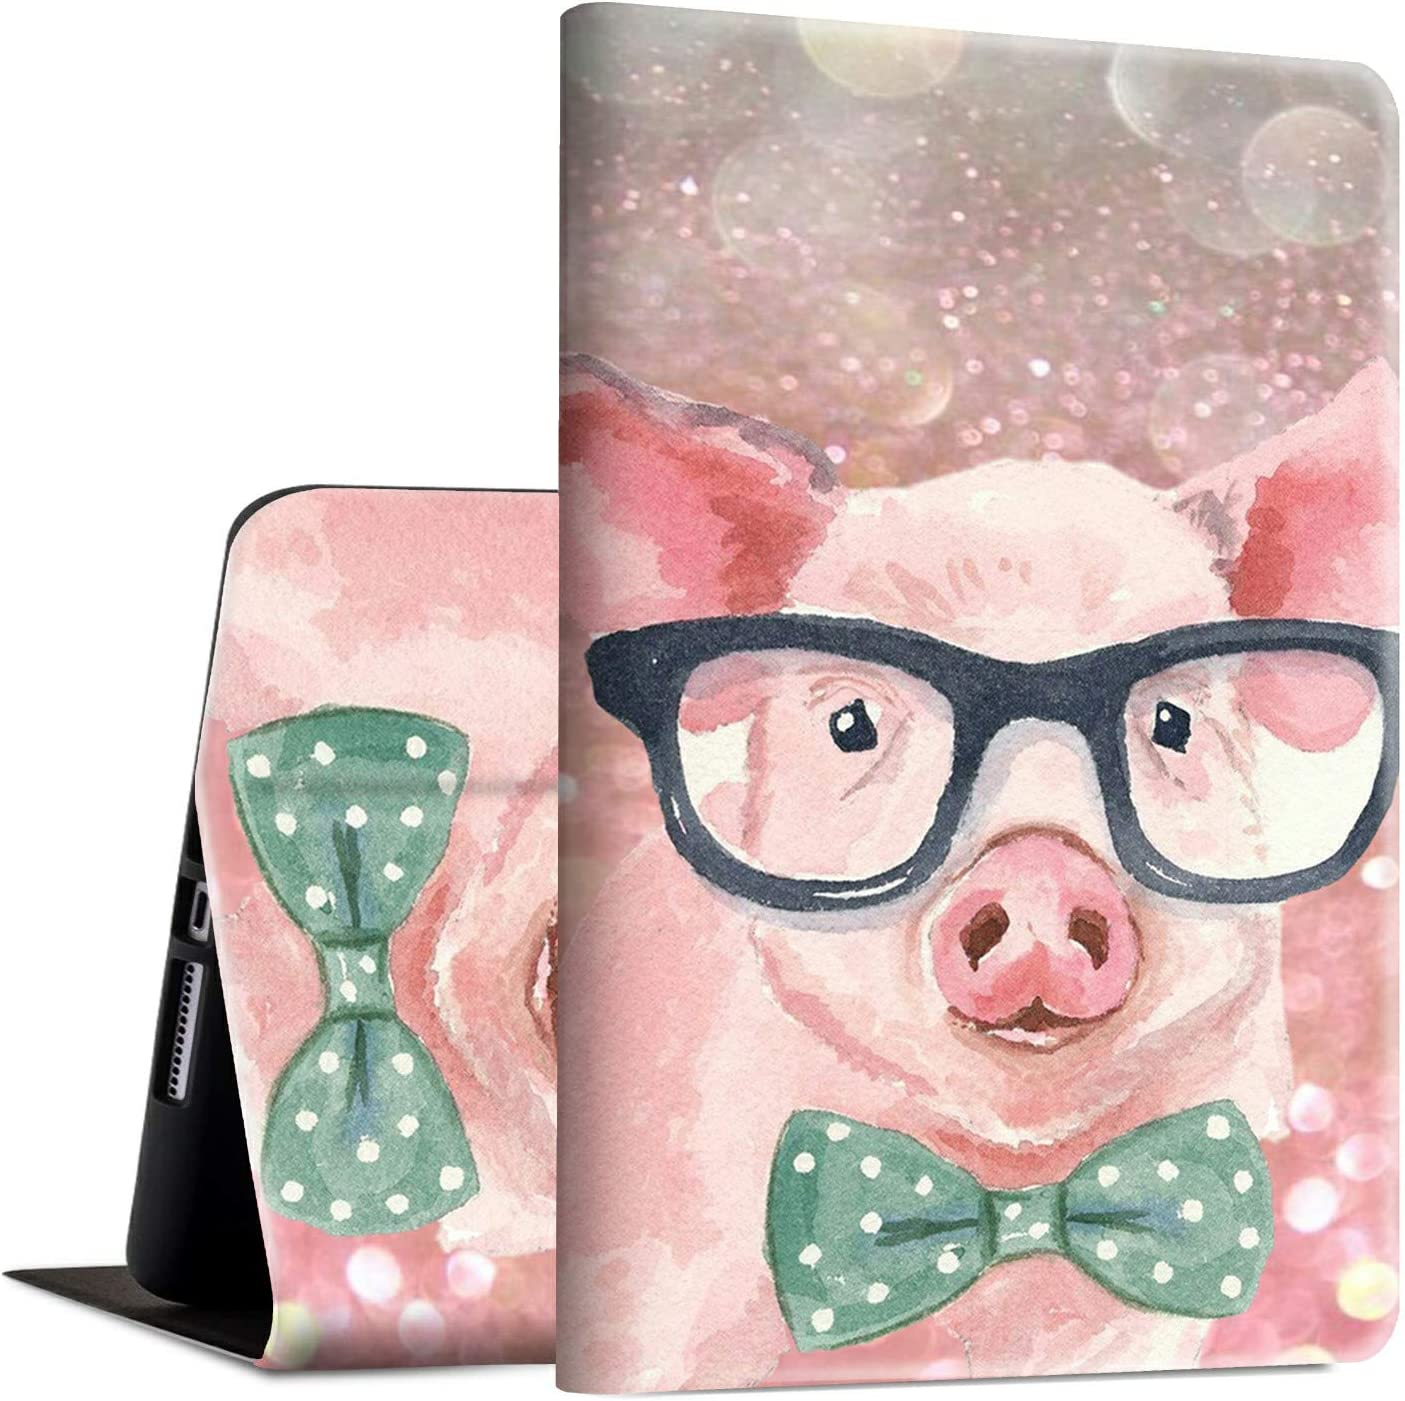 iPad Pro 11 Case/2nd Gen Cover 2020, Rossy PU Leather Folio Smart Cover TPU Shock Case with Adjustable Stand & Auto Wake/Sleep Feature for Apple iPad Pro 11 2020 Release - Pink Pig with Glasses